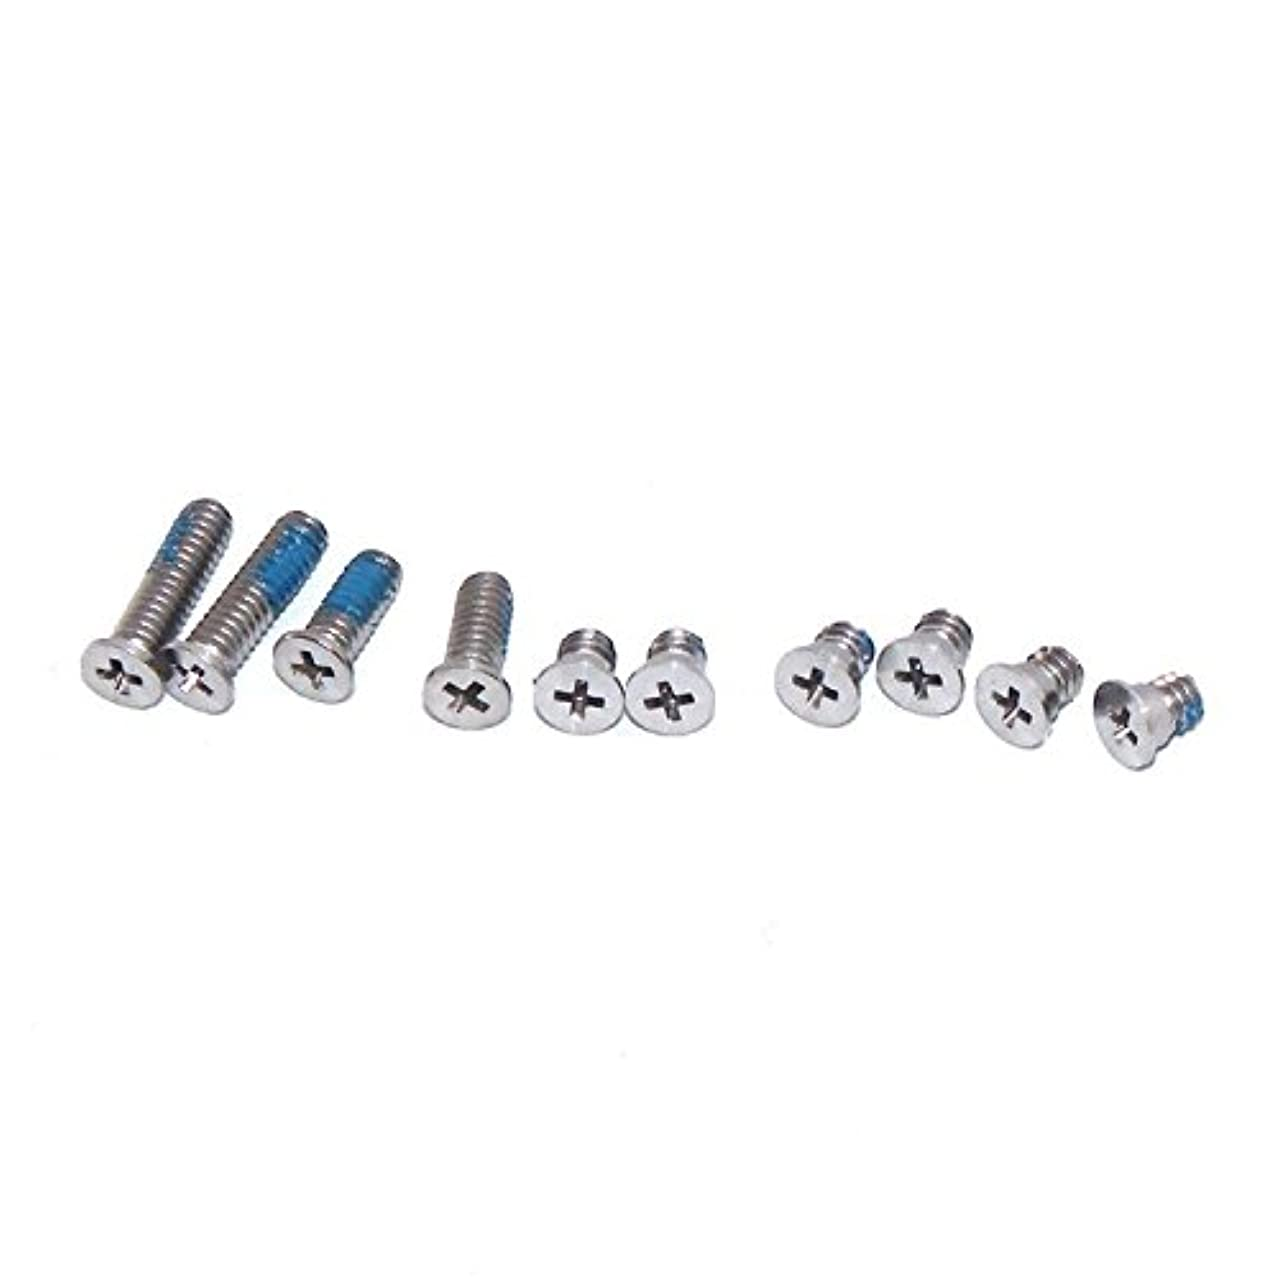 (#94) 10 in 1 for compatible with : Macbook Air 13.3 inch A1237 / A1304 Computer Case Bottom Cover Screws (4 Long + 6 Short)